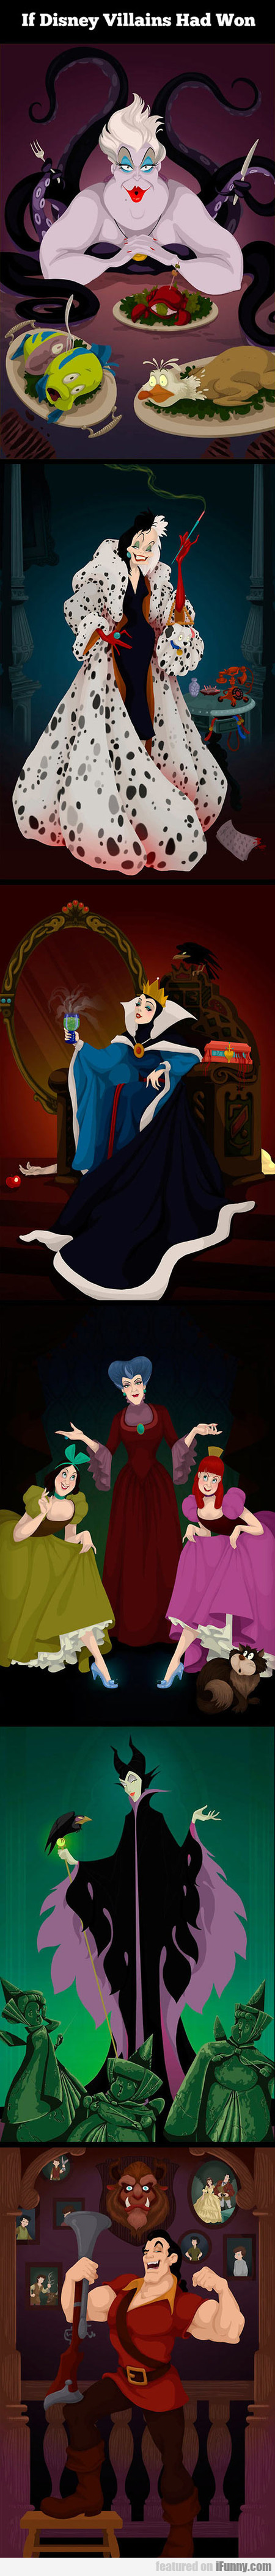 If Disney Villains Had Won...